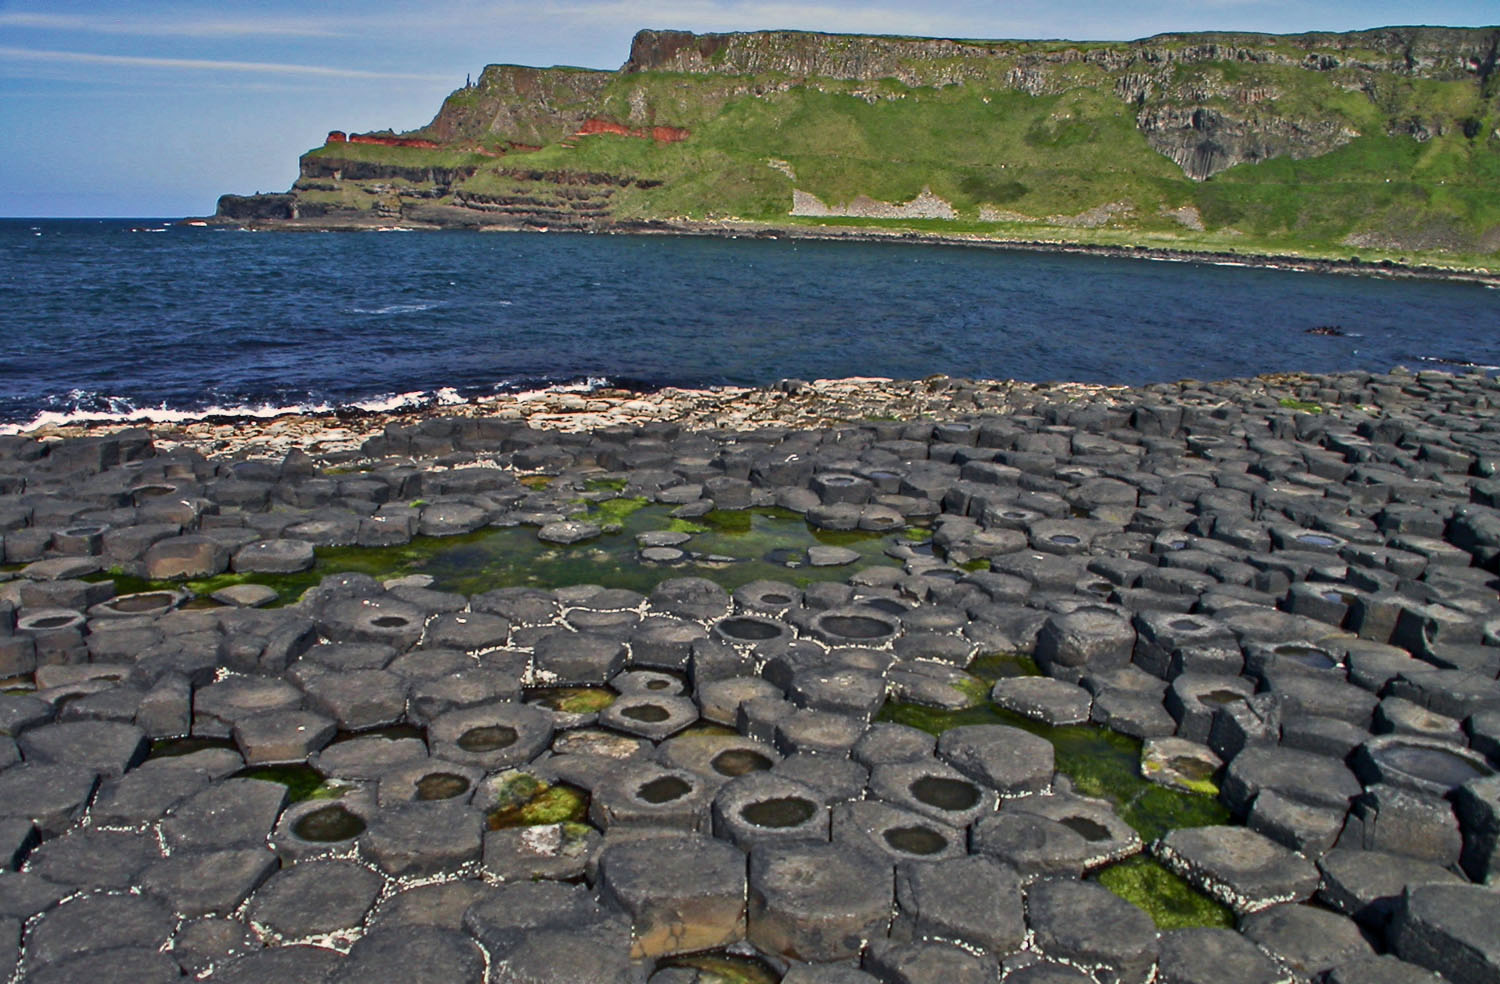 Ireland-Sights-And-Scenery-Giants-Causeway